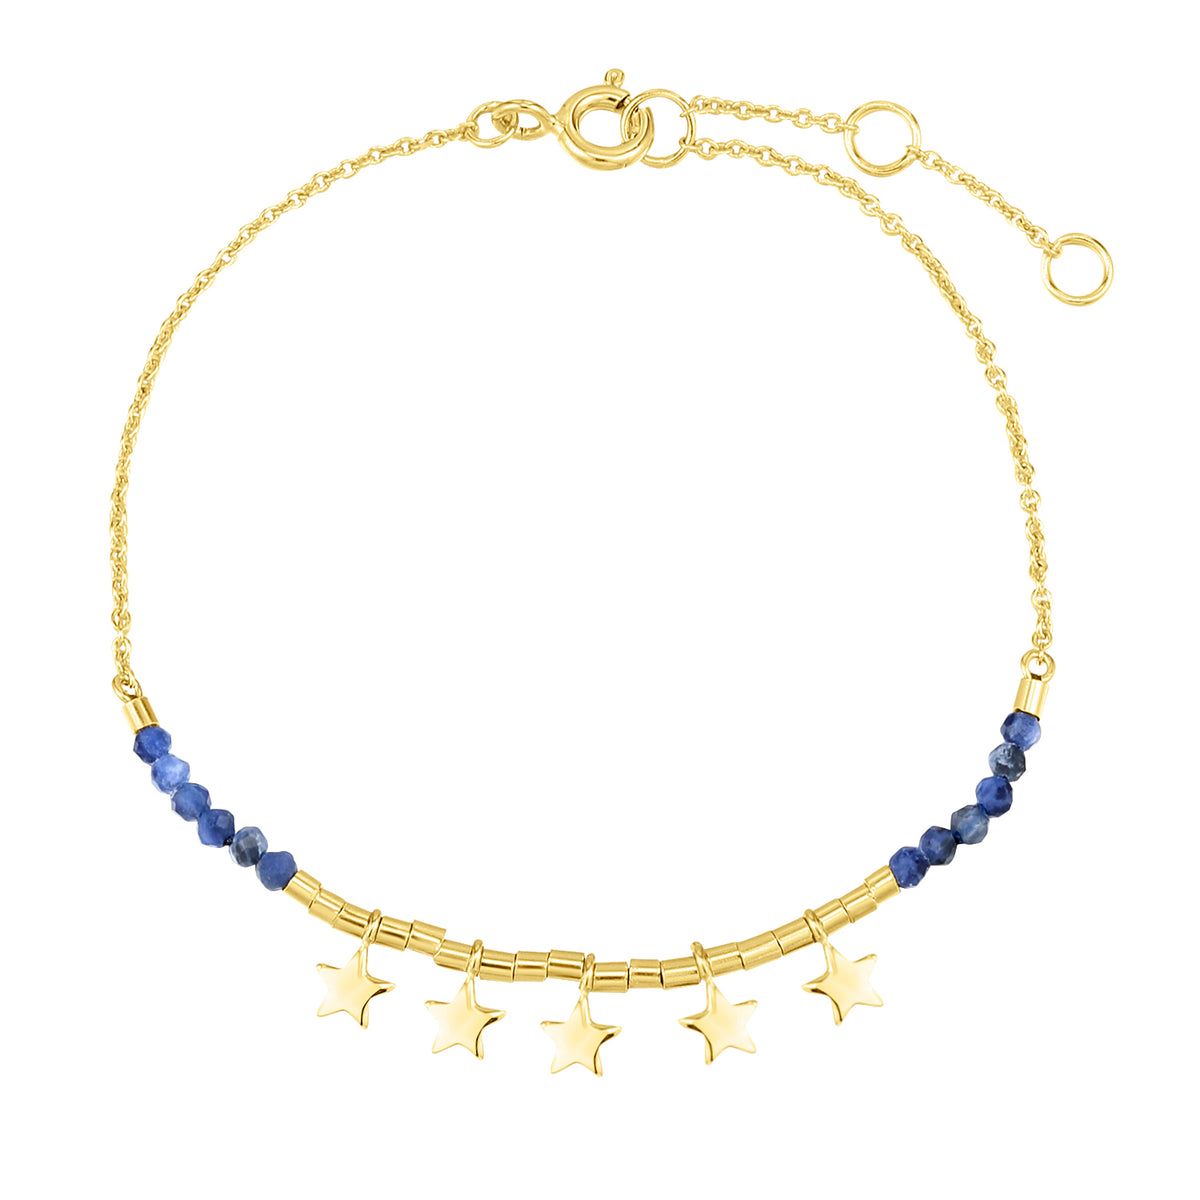 Spirito Rosa X Queen Dina Summer | River Bracelet | 925 Silver | Blue-Vein Stone | 14K Gold Plated